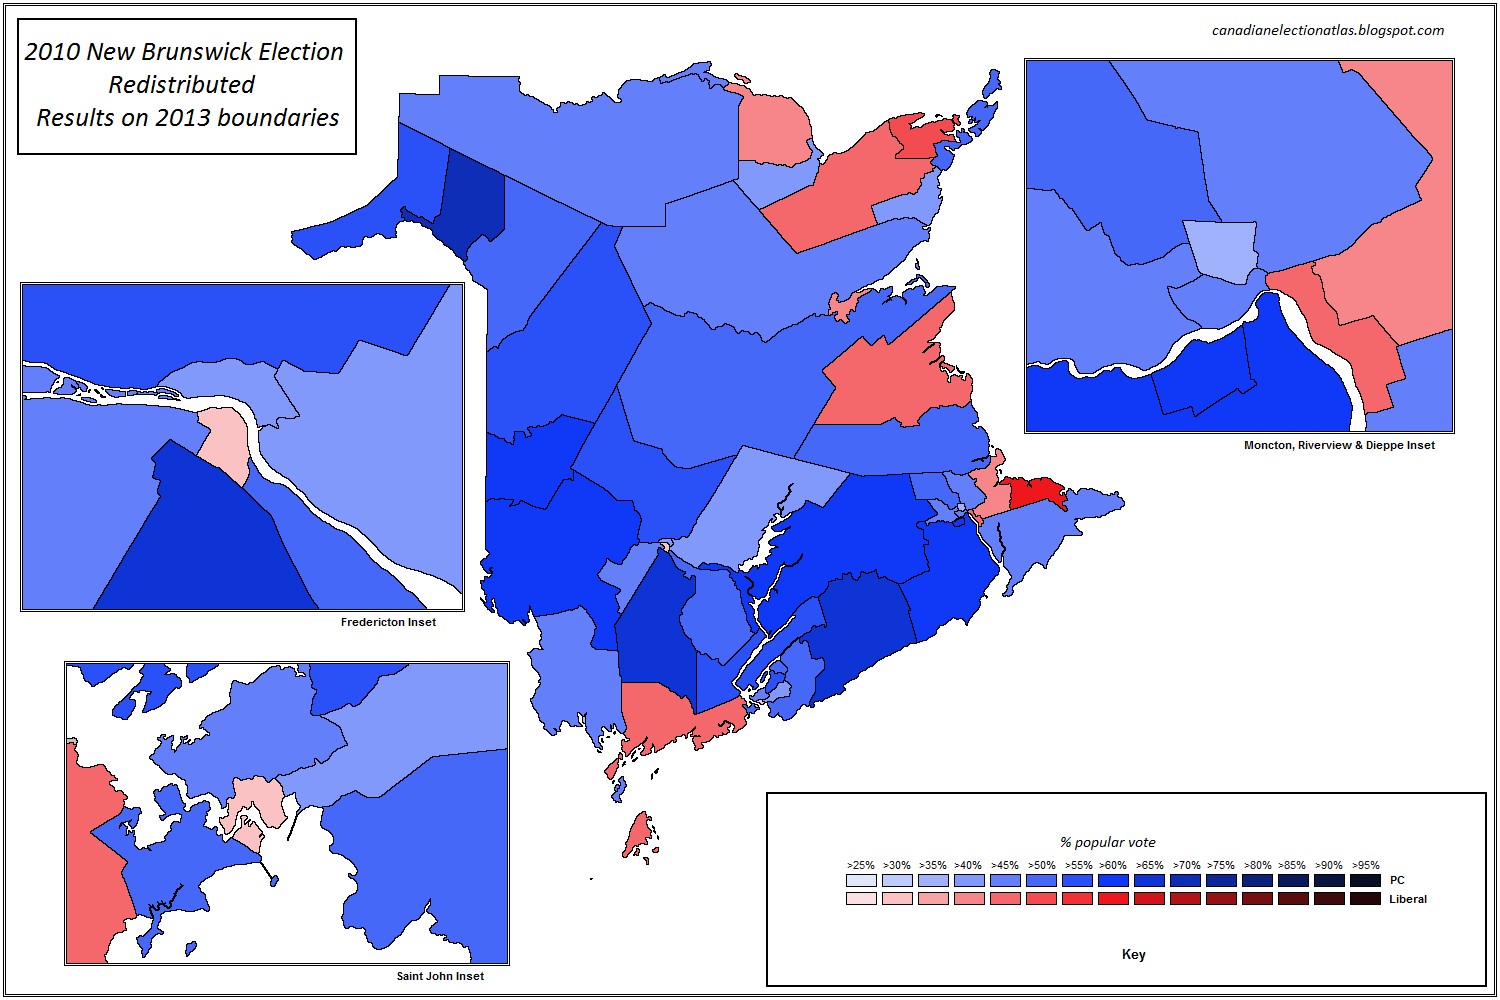 Canadian Election Atlas: New Brunswick provincial redistribution and transposition